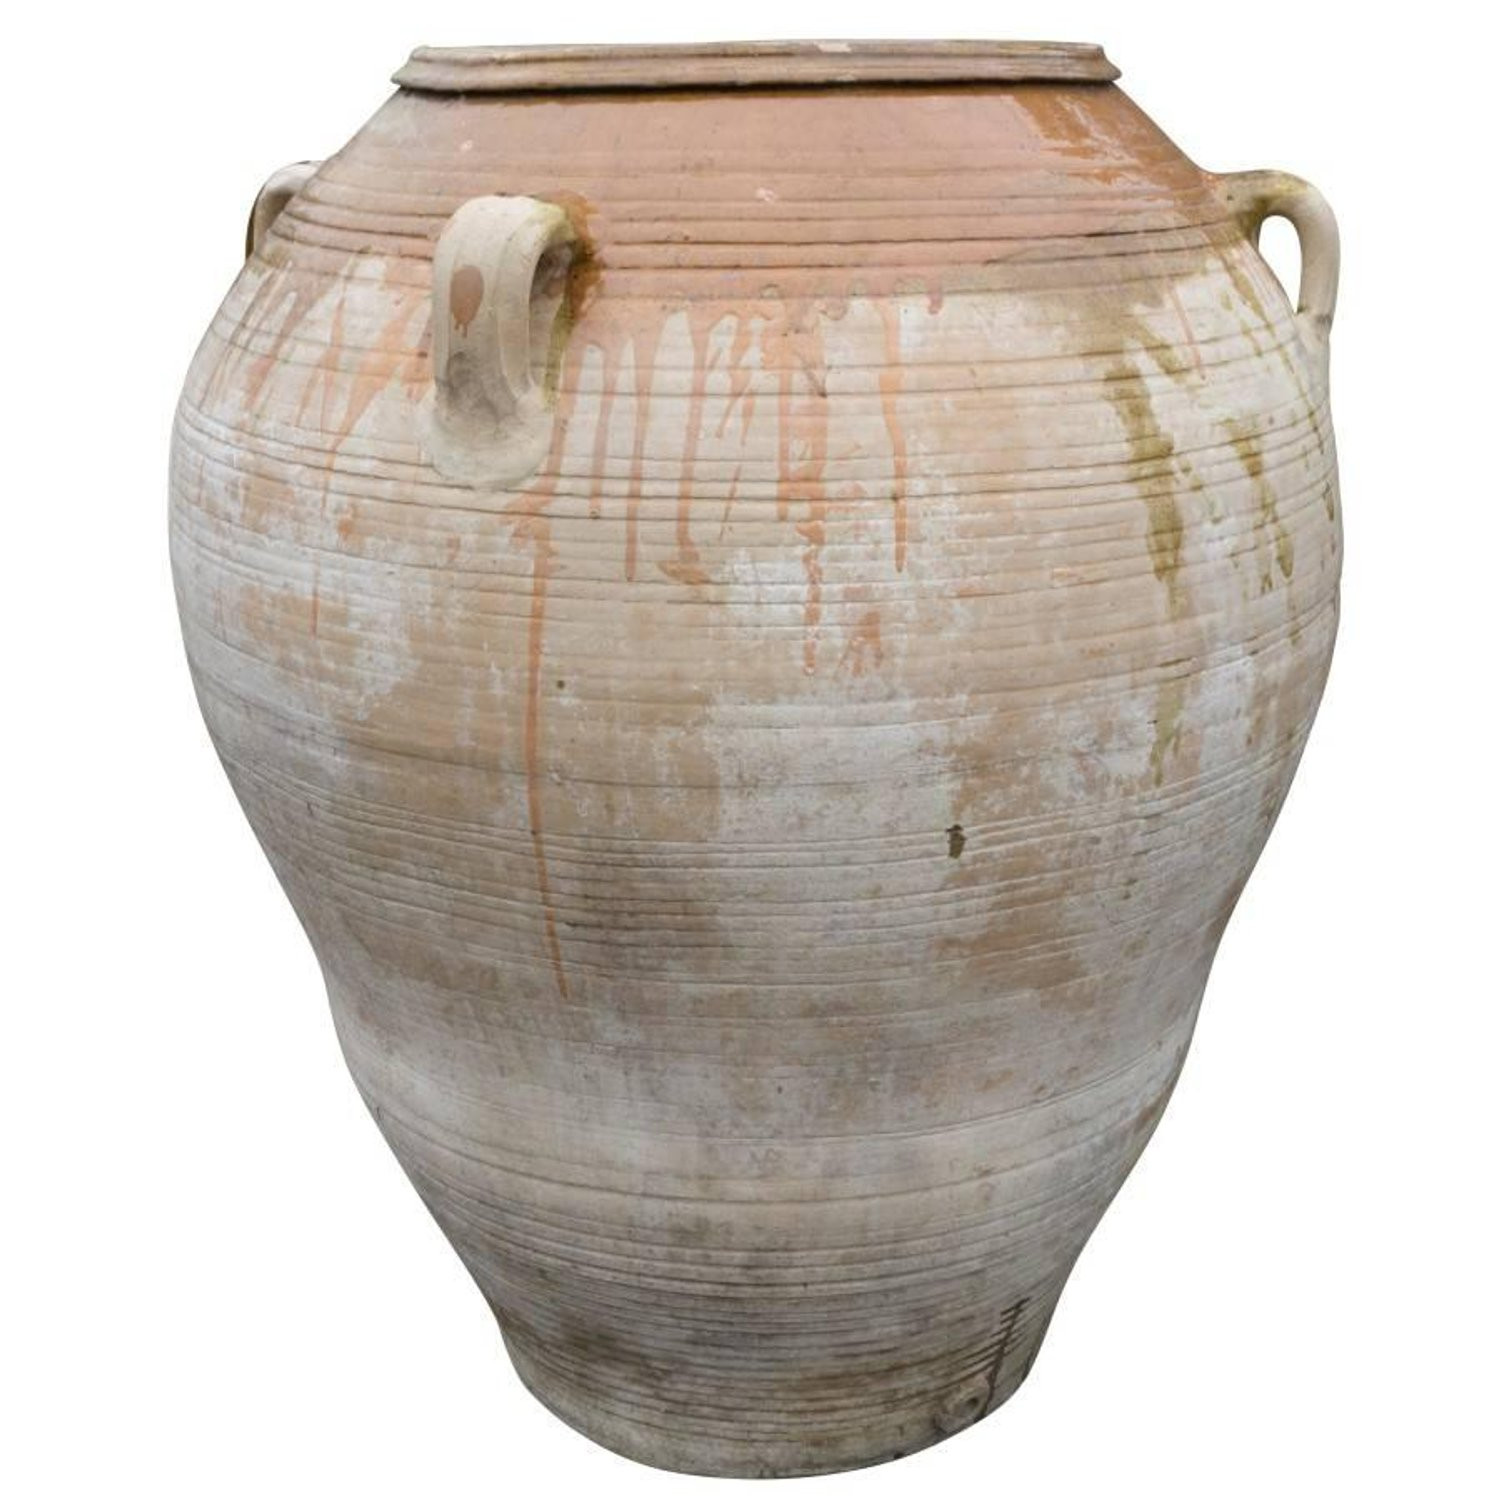 12 Great Large Yellow Ceramic Vase